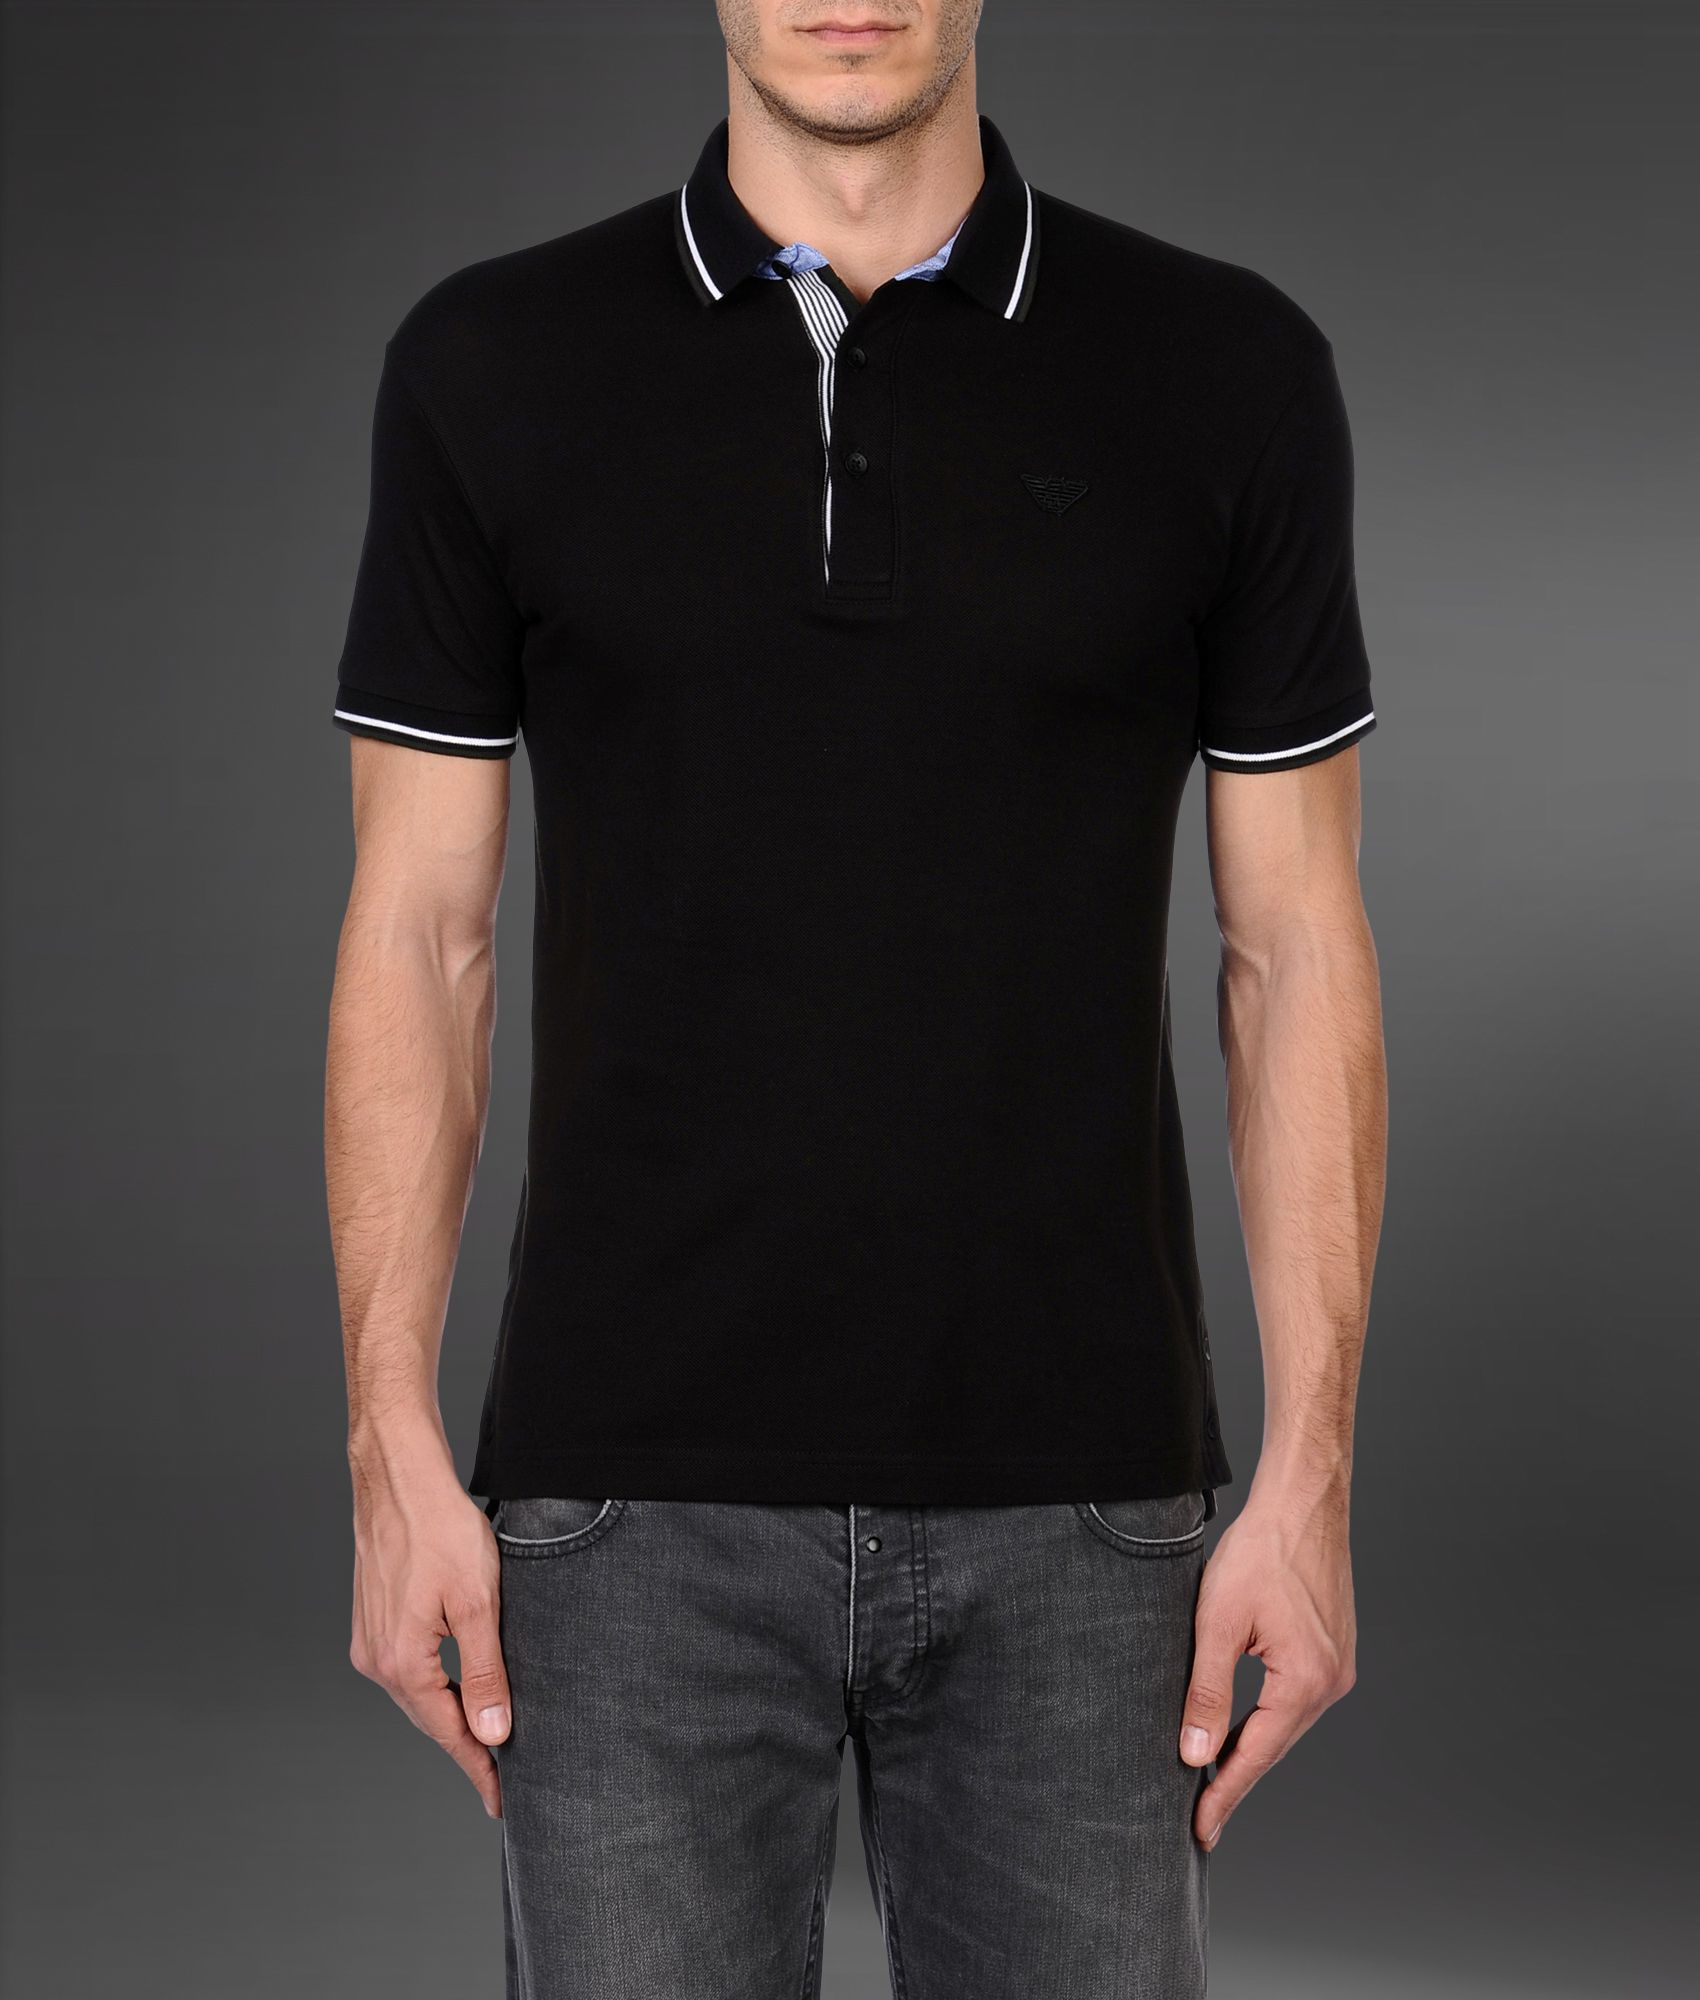 3bf870df6 Emporio Armani Shortsleeved Polo Shirt in Black for Men - Lyst